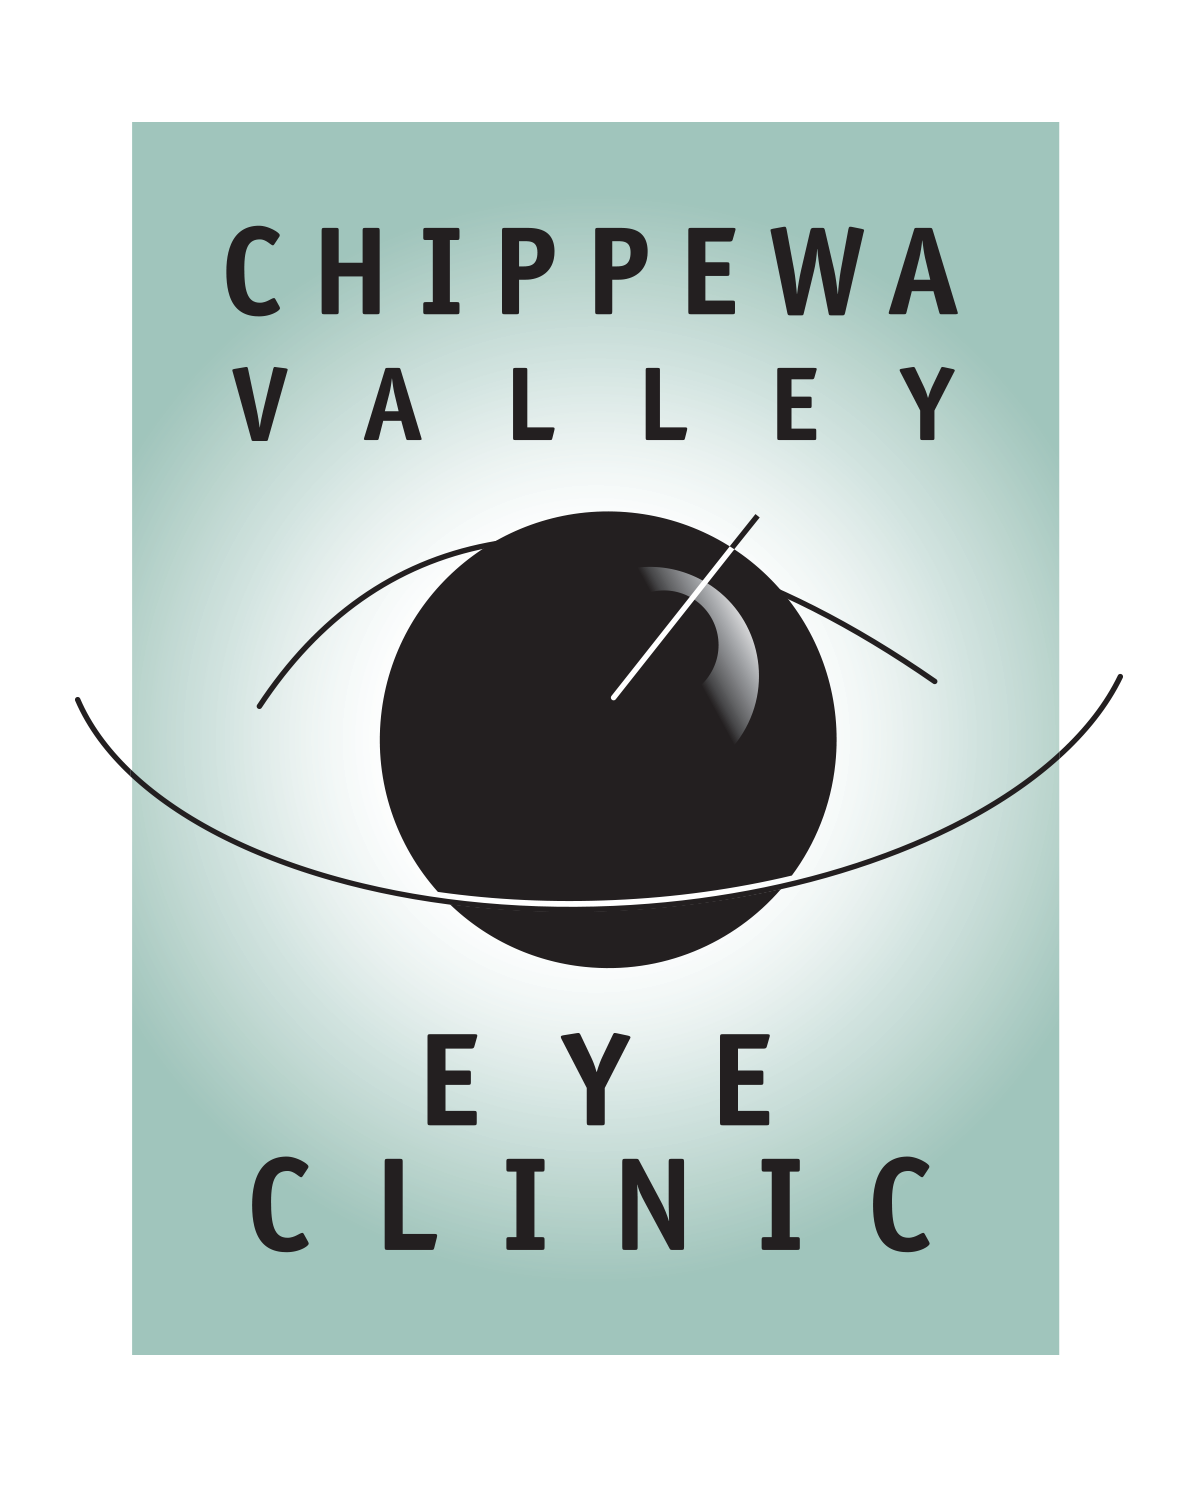 Chippewa Valley Eye Clinic